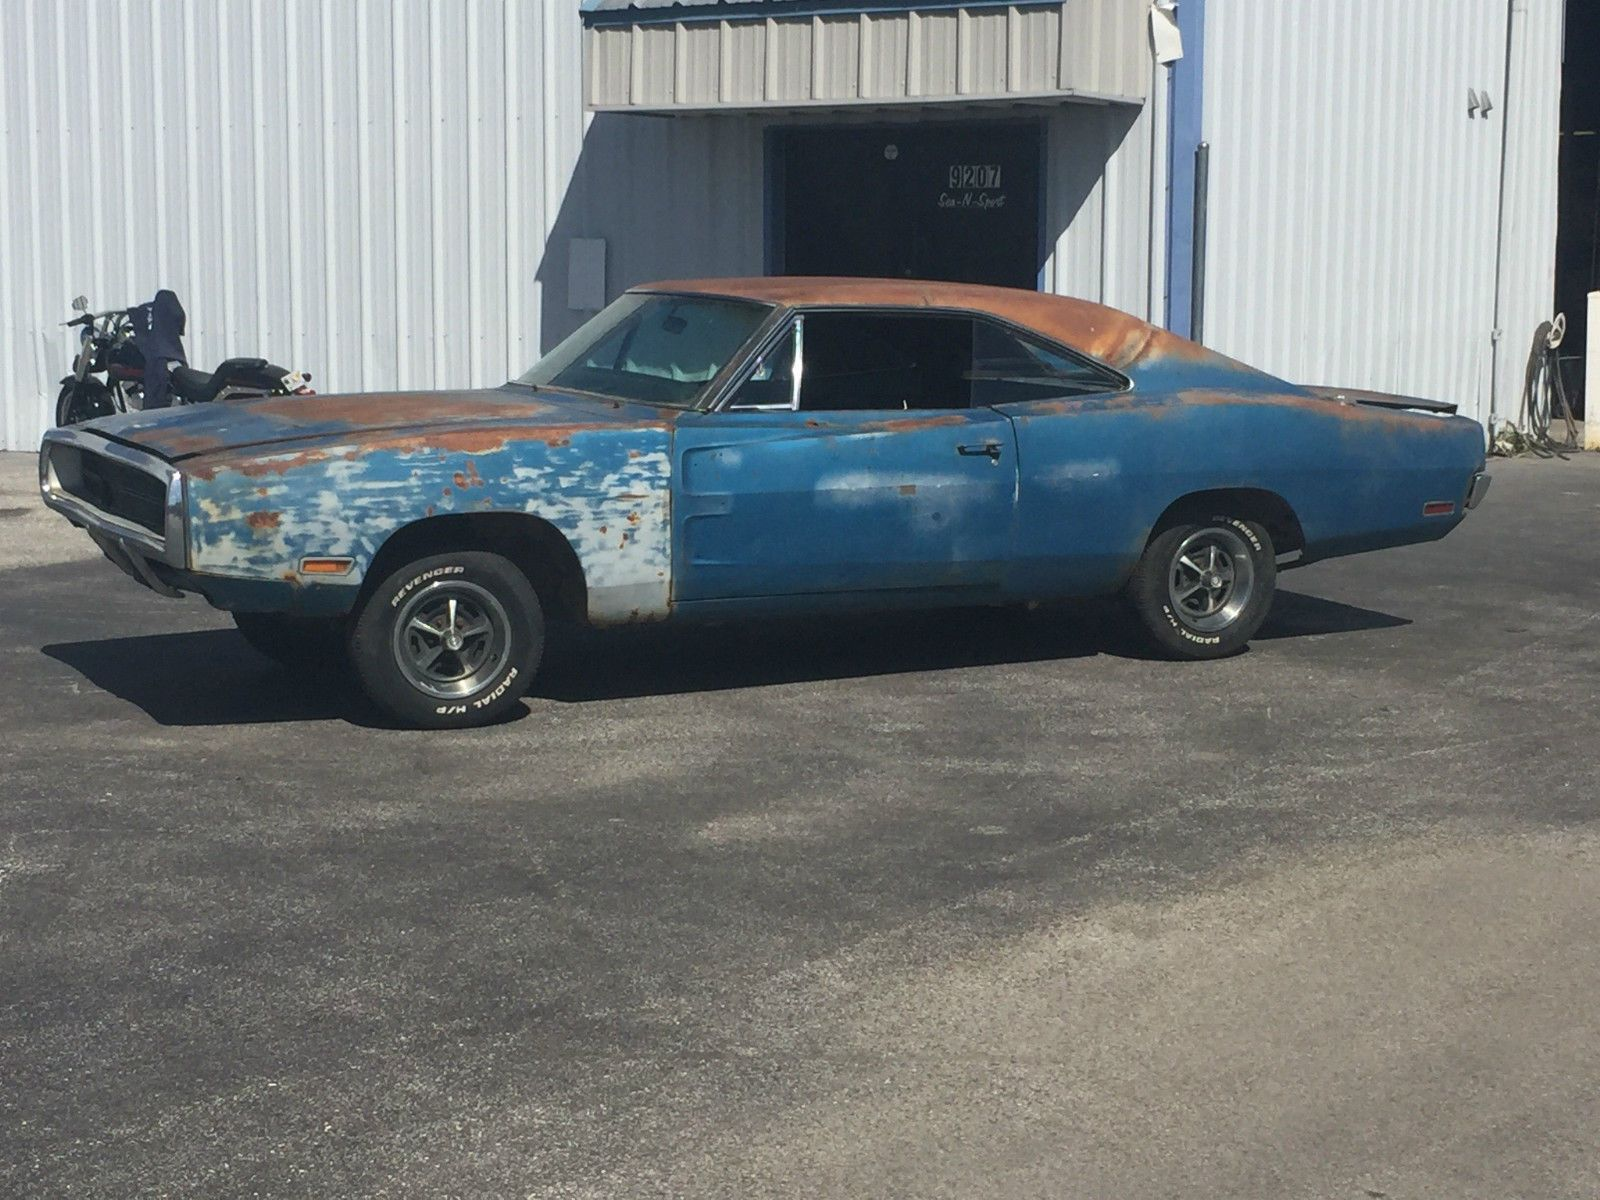 Dodge Charger Rt For Sale >> 1970 Dodge Charger Rt Project Car Overall Solid Car Project Cars